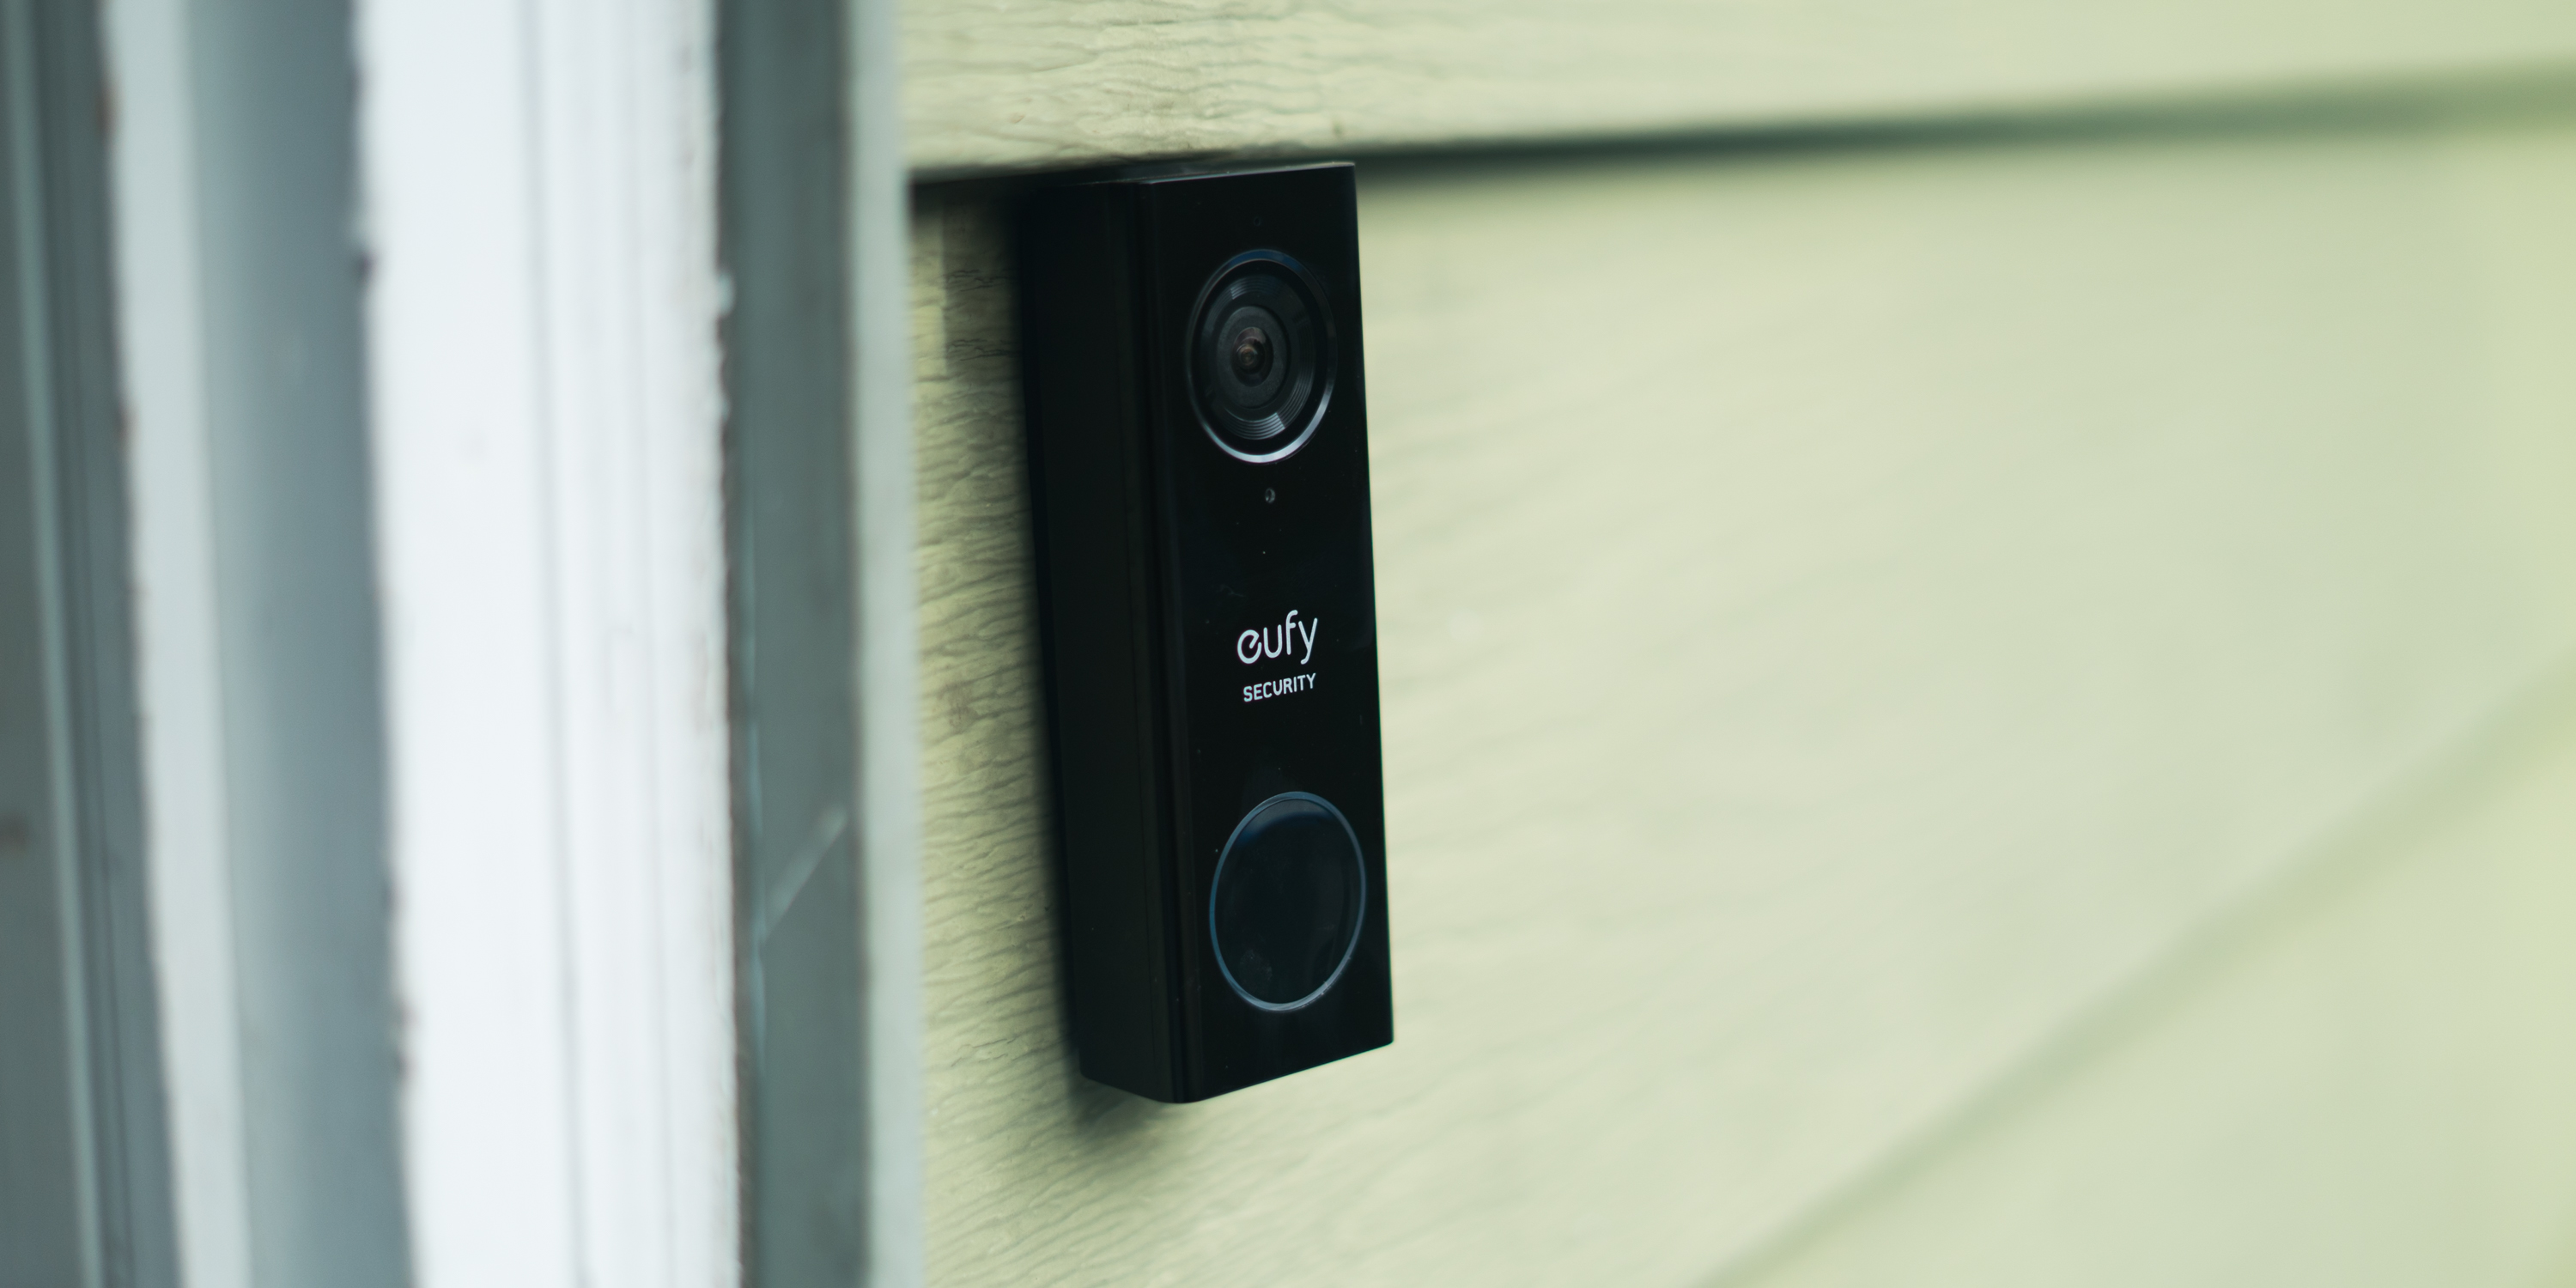 eufy video doorbell mounted outside